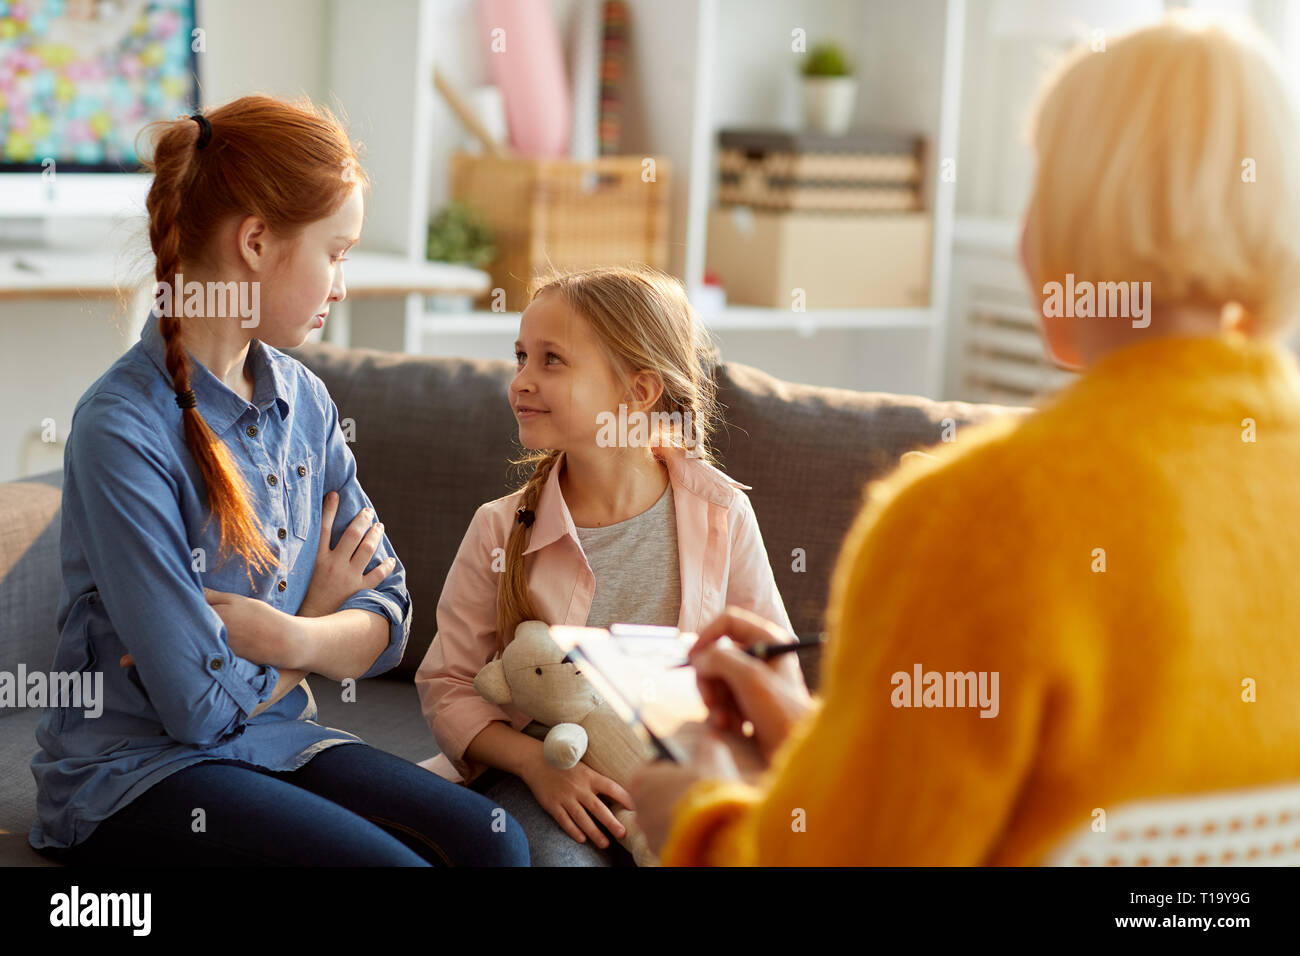 Sisters in Therapy Session - Stock Image